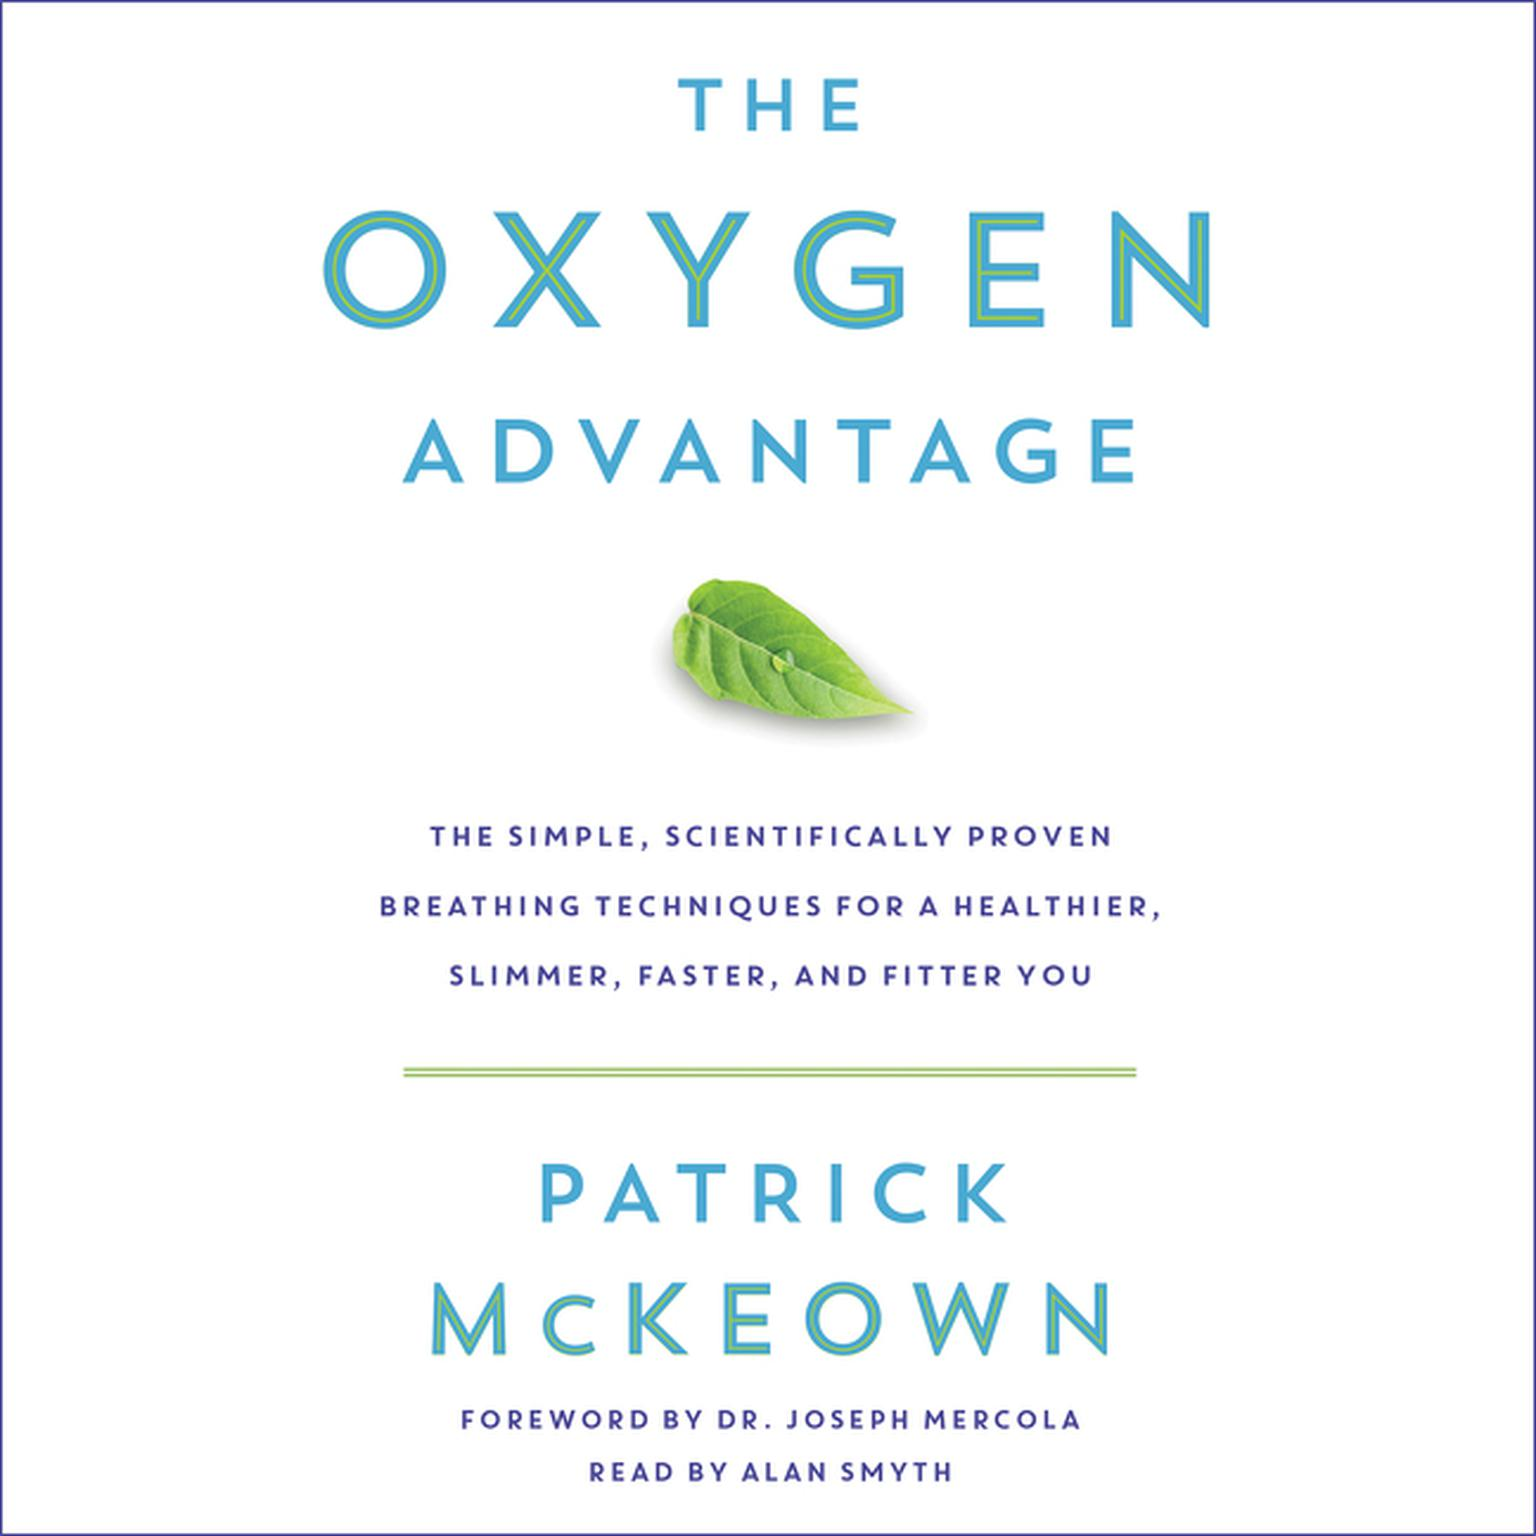 A few lessons from — The Oxygen Advantage